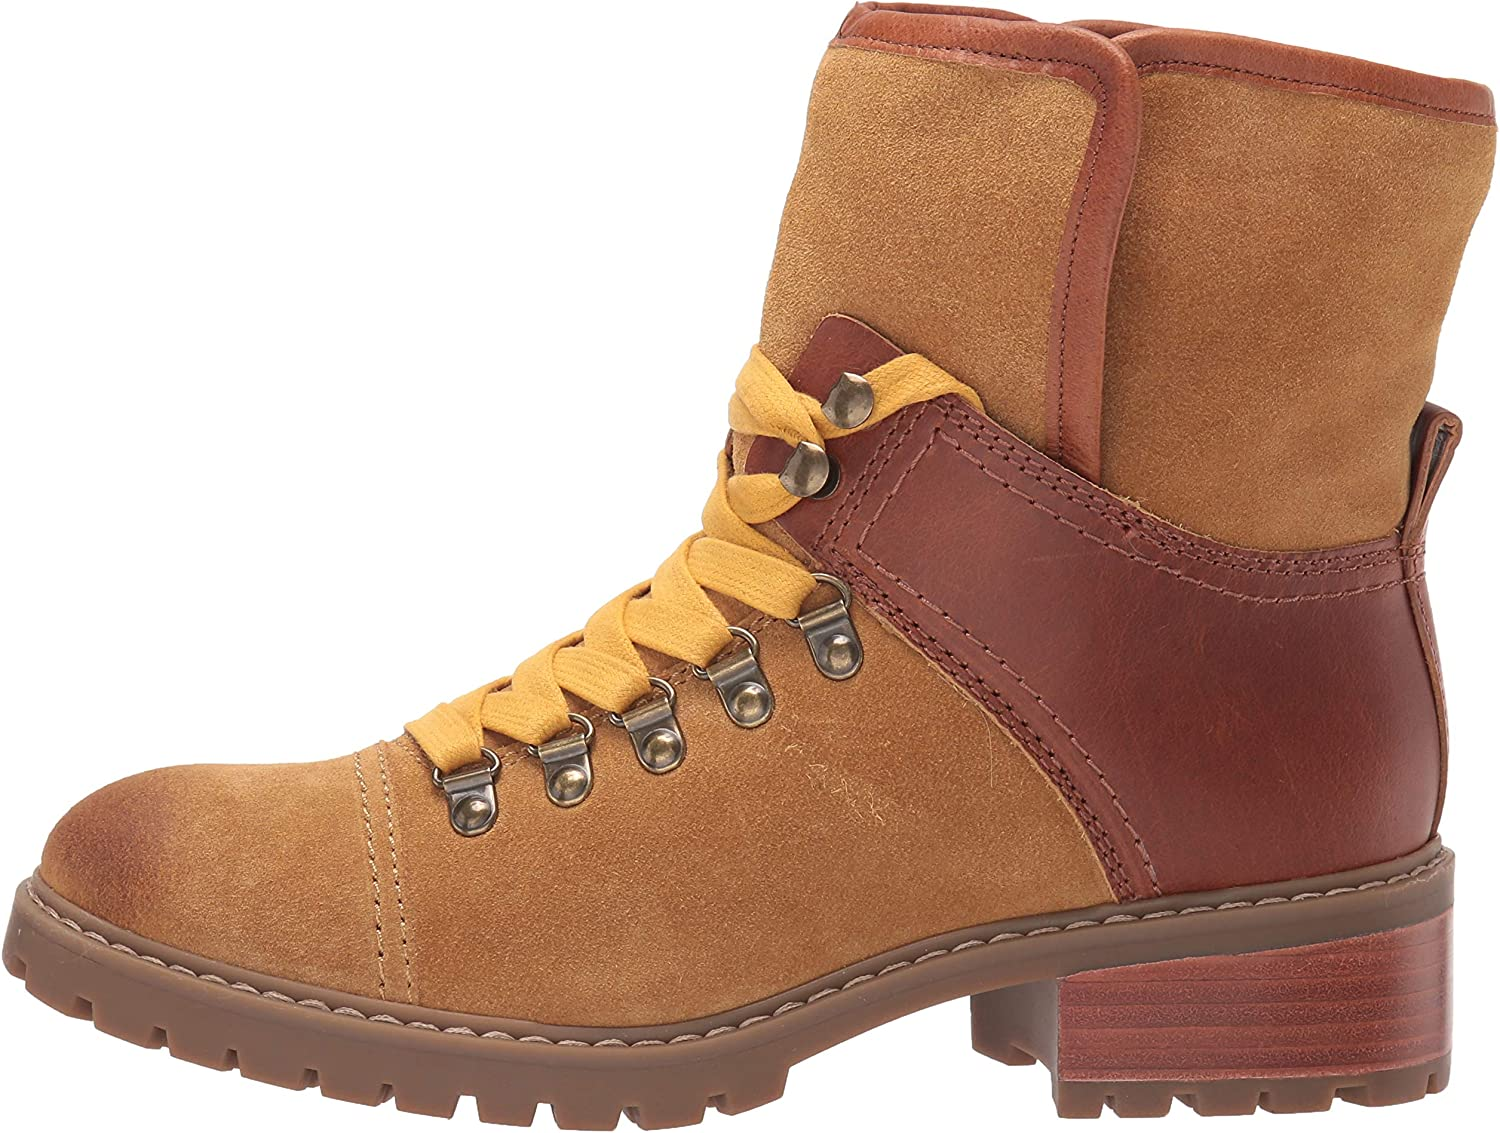 Womens Anise Hiker Hiking Boot Frye and Co